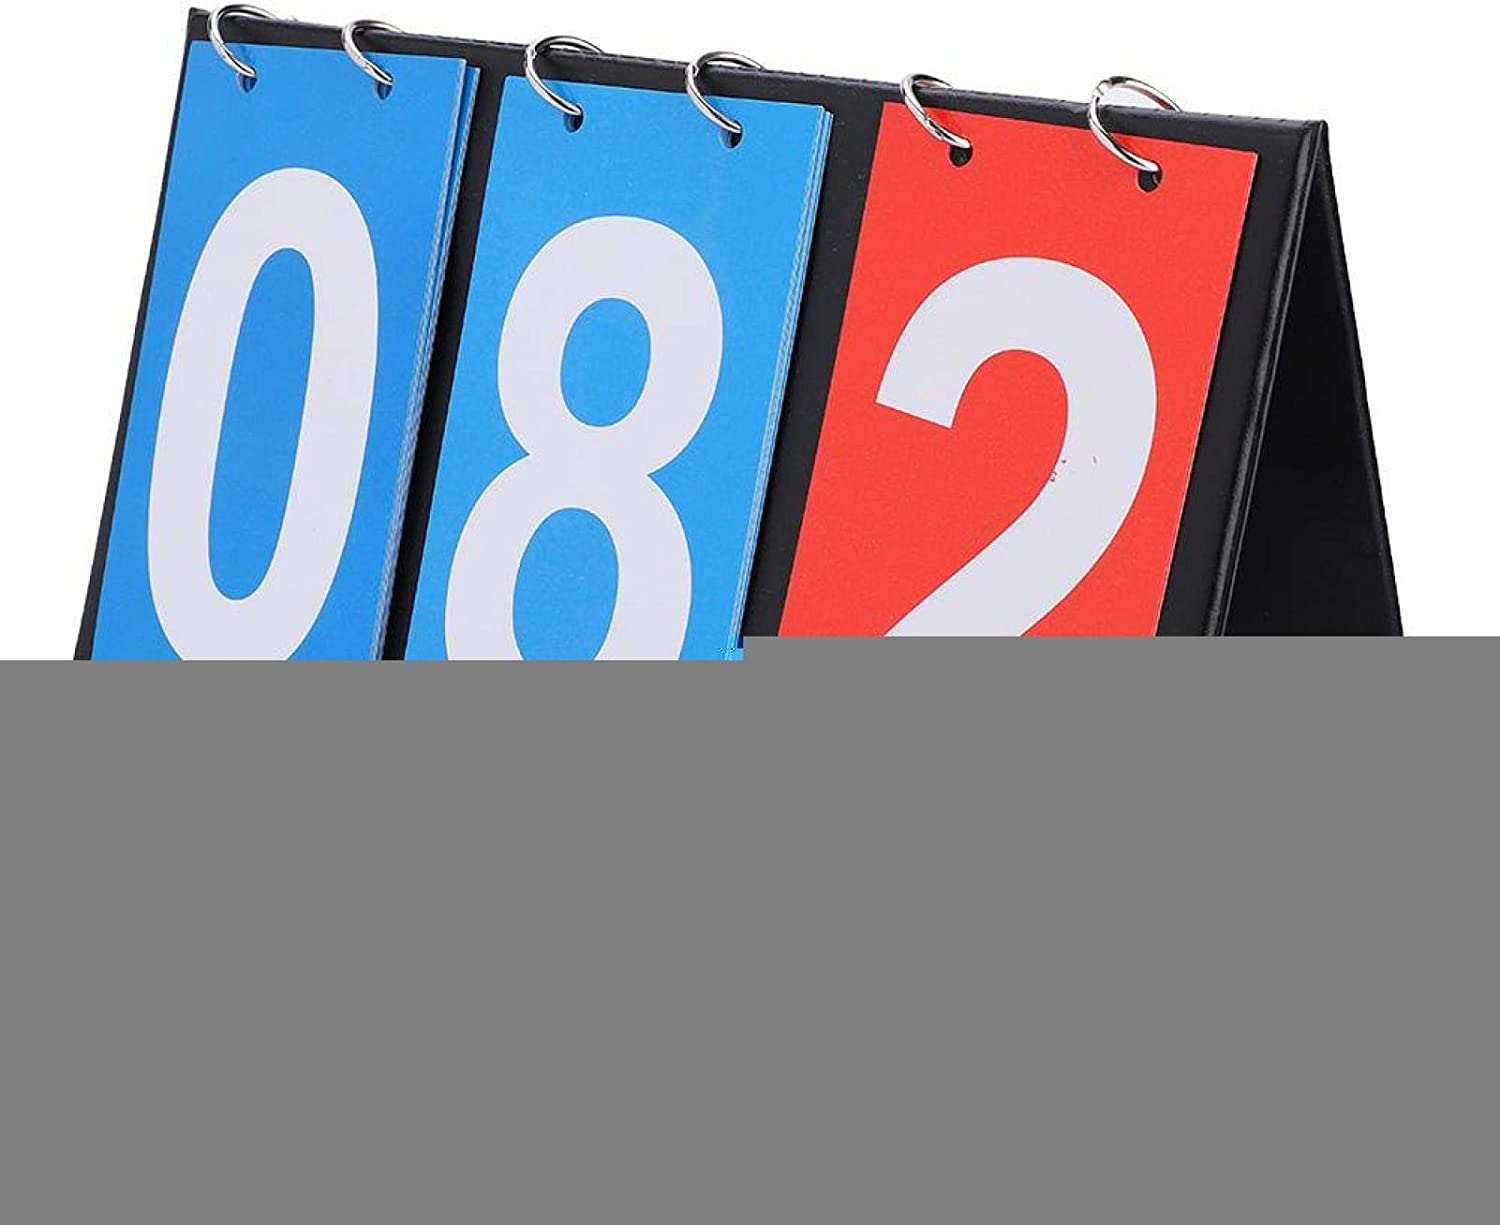 Portable Scoreboard Basketball Pliable Durable and Recommended F Bombing free shipping